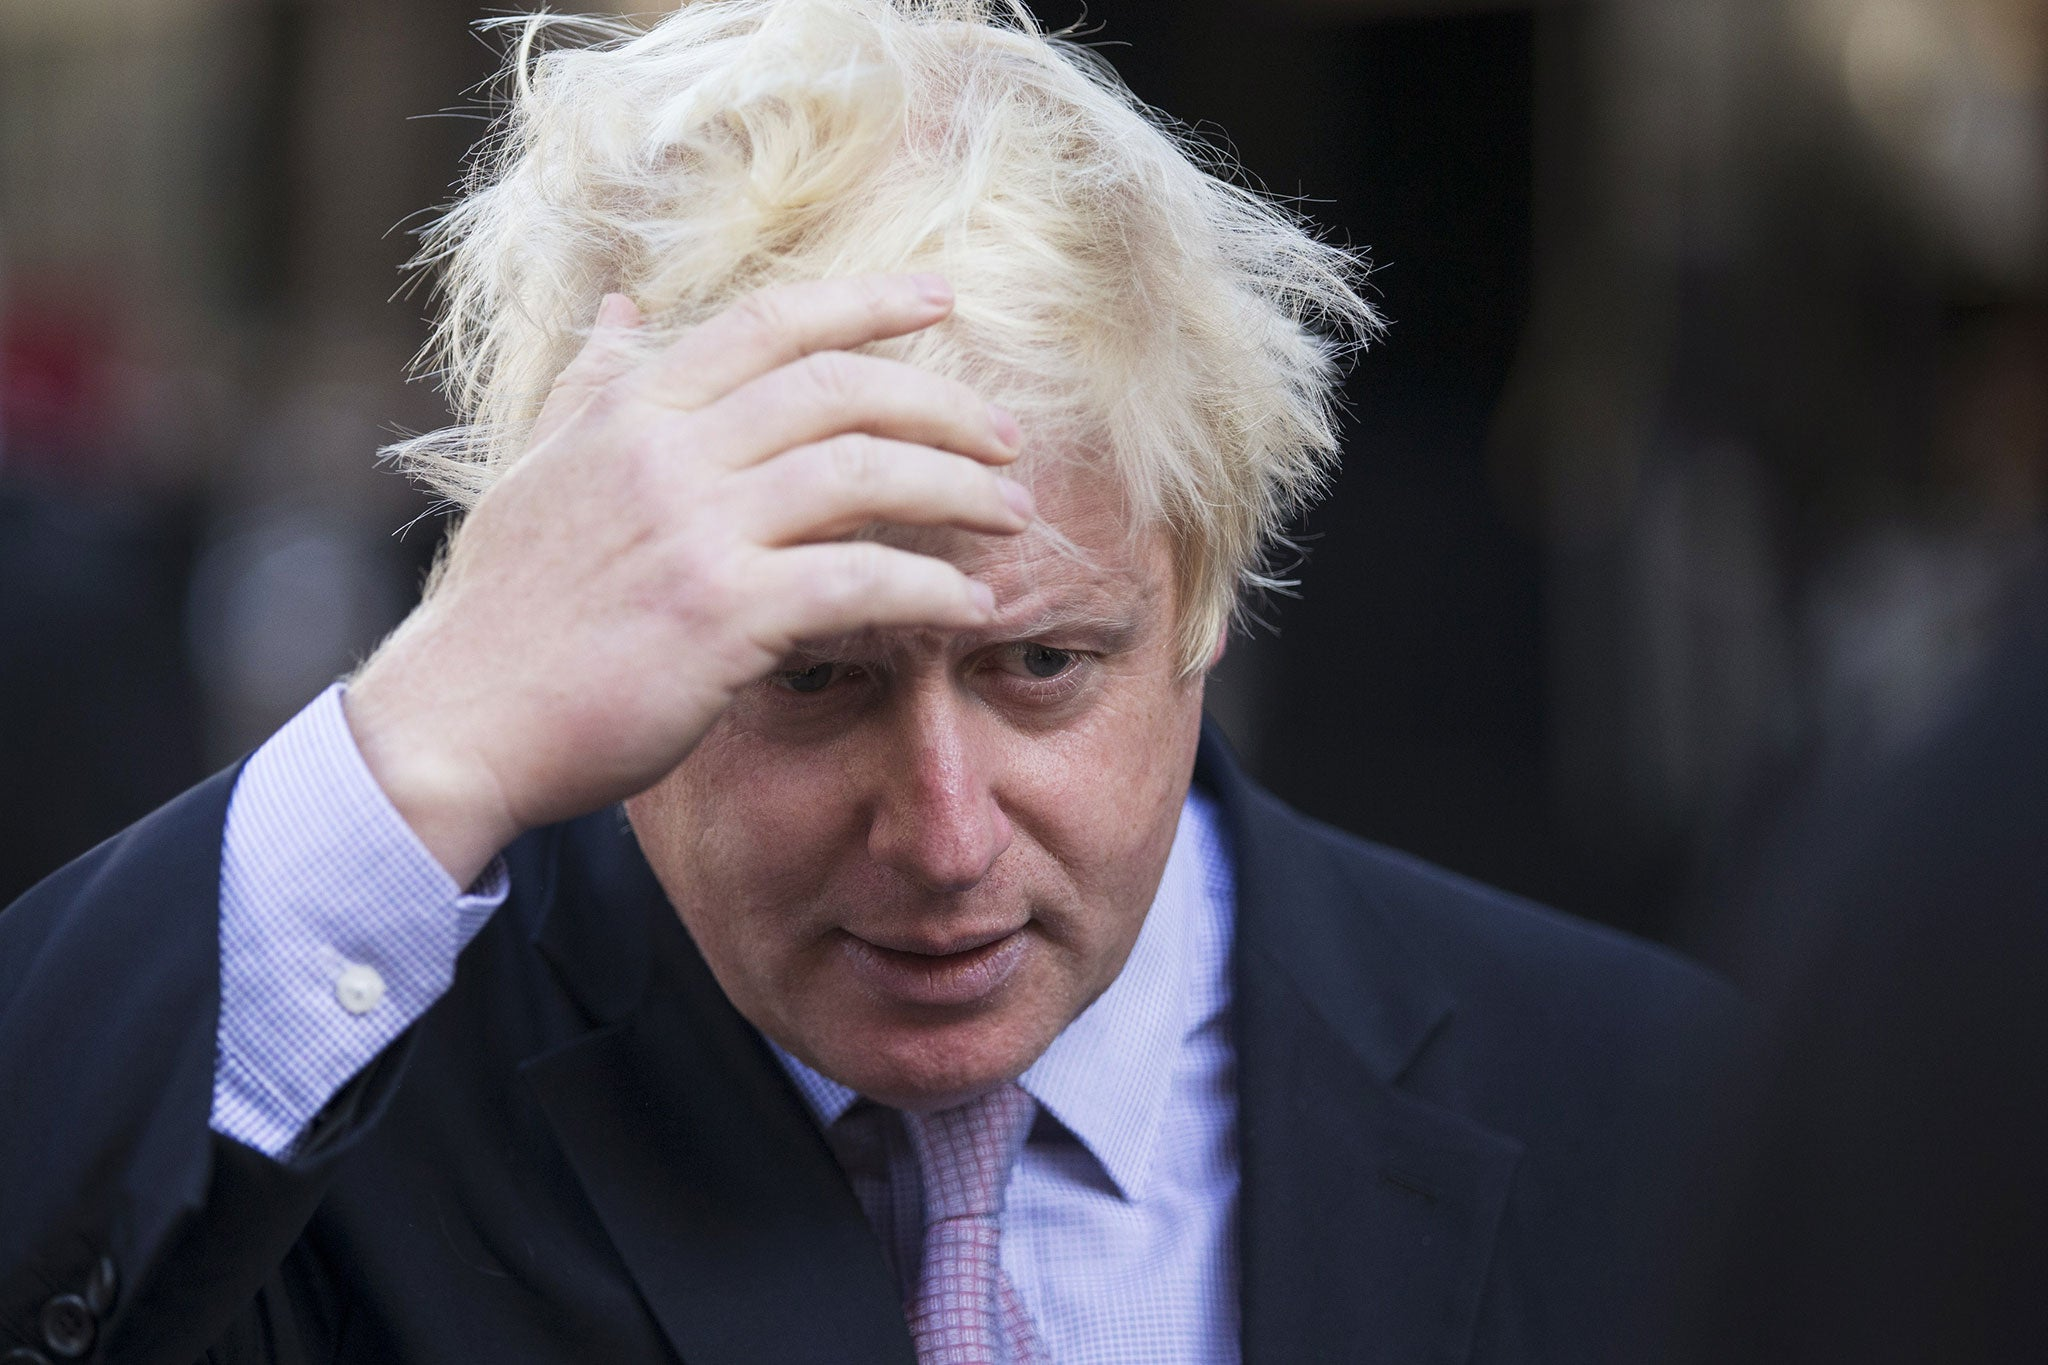 boris johnson - photo #16